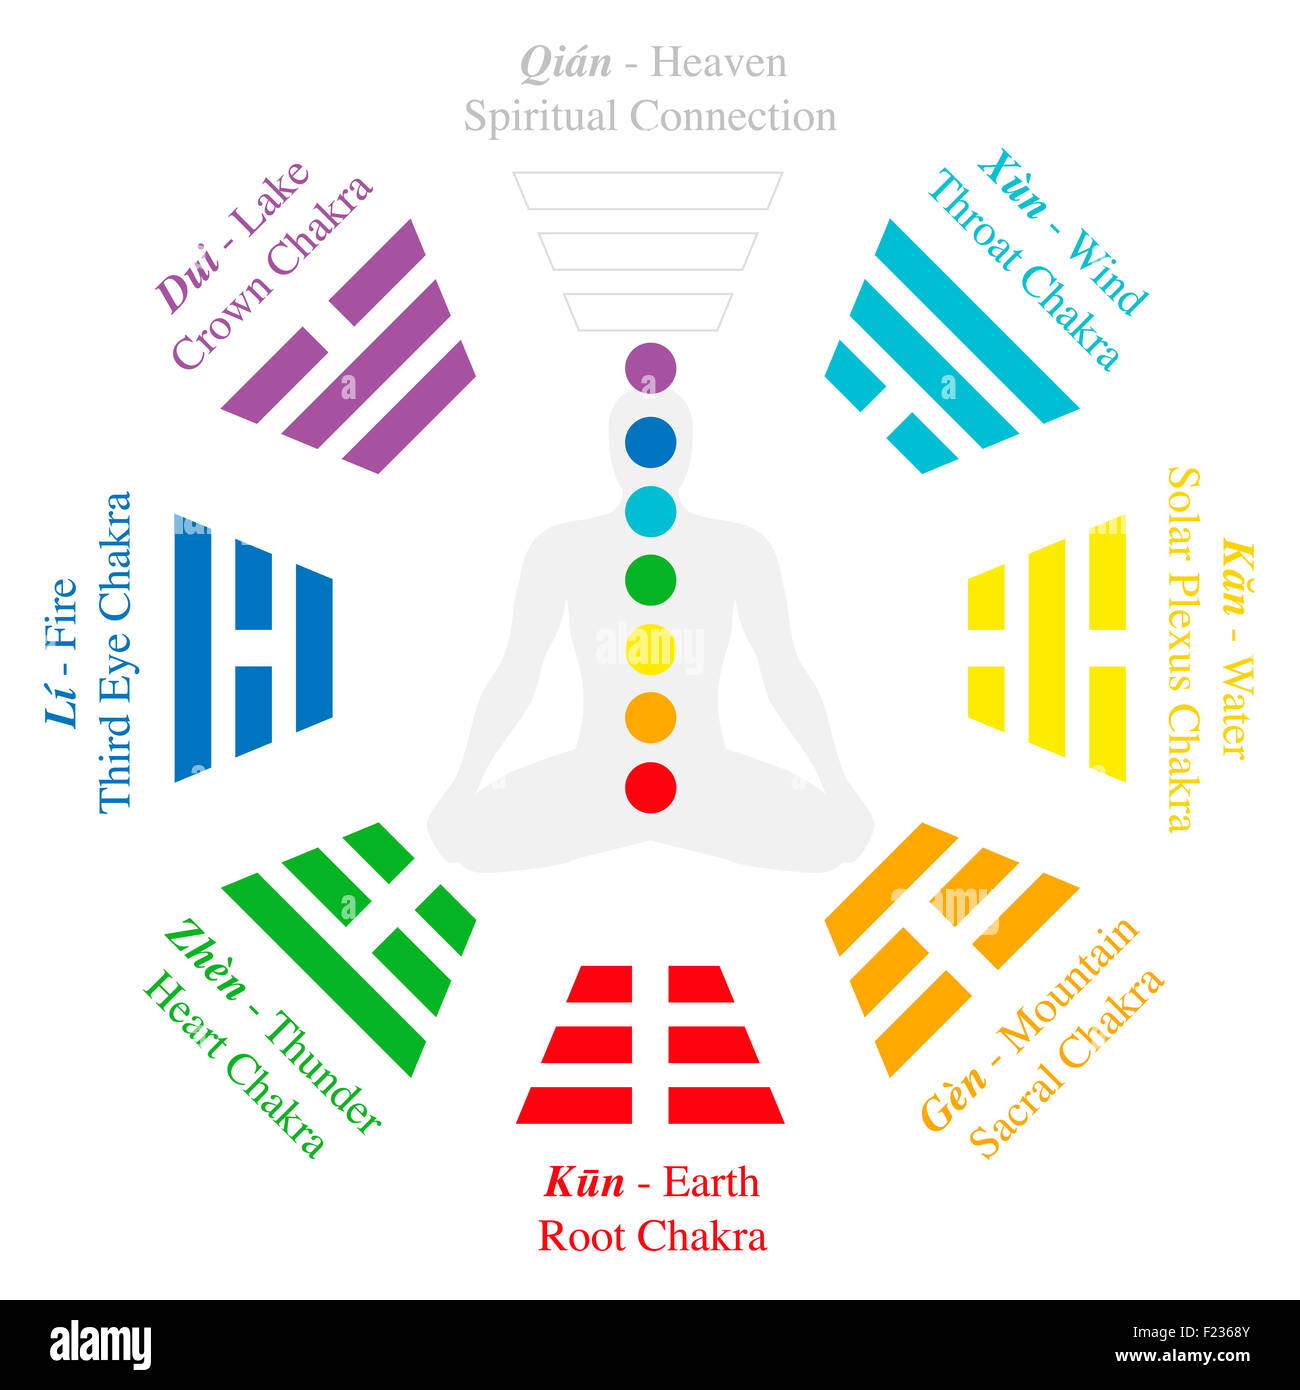 Chakras of a meditating man in yoga position - by analogy the trigrams or Bagua of I Ching. - Stock Image